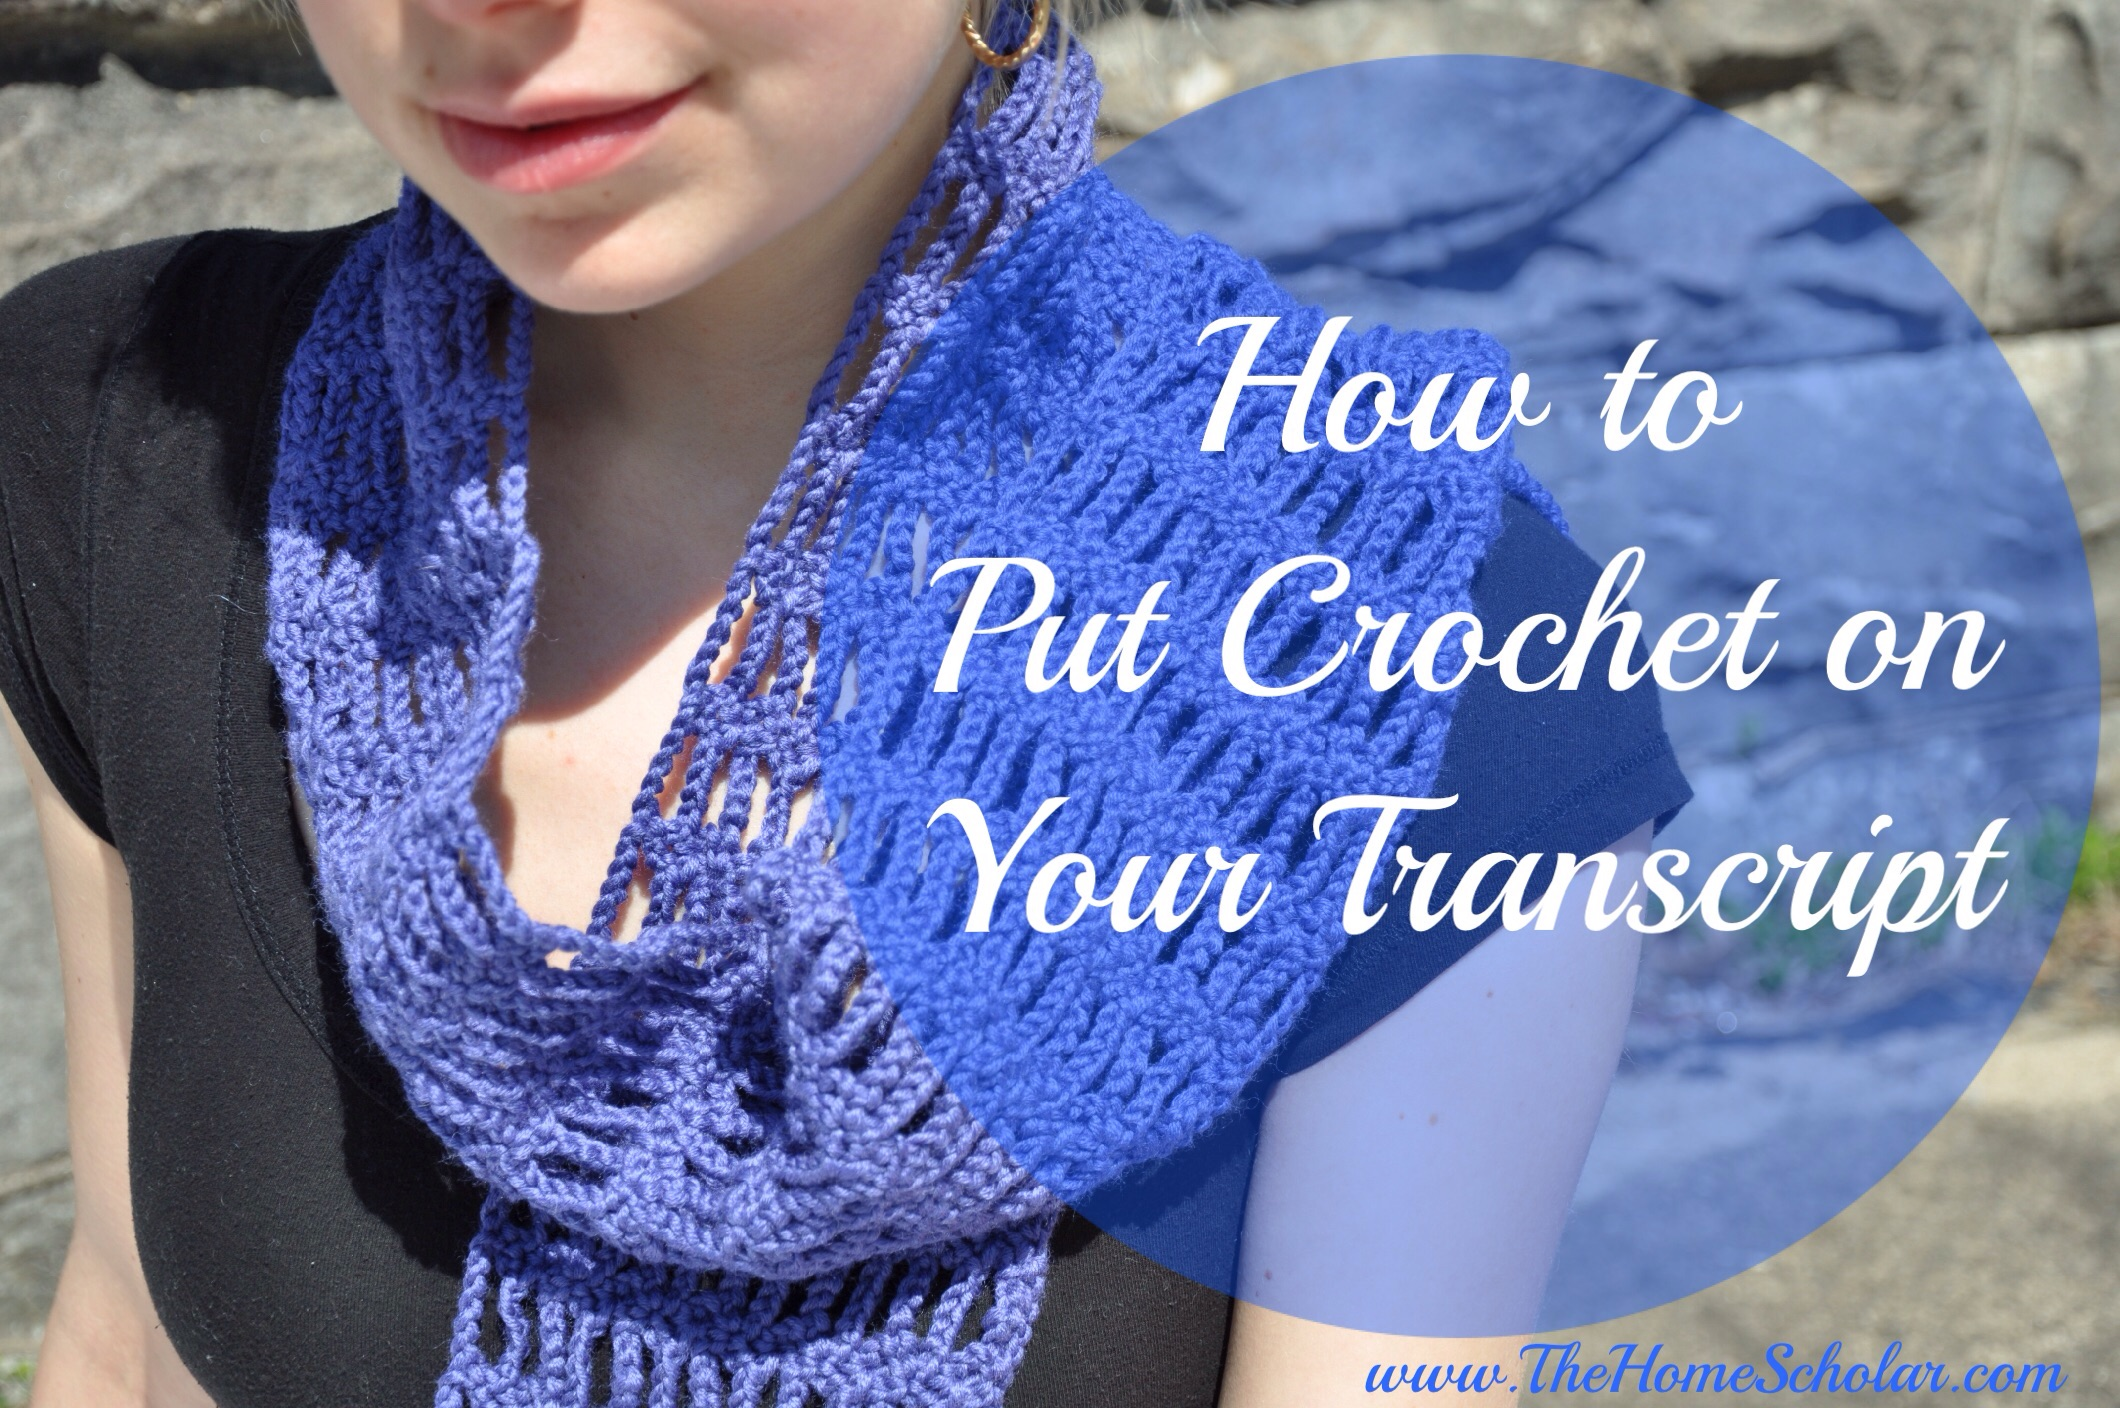 How to Put CROCHET on Your Transcript